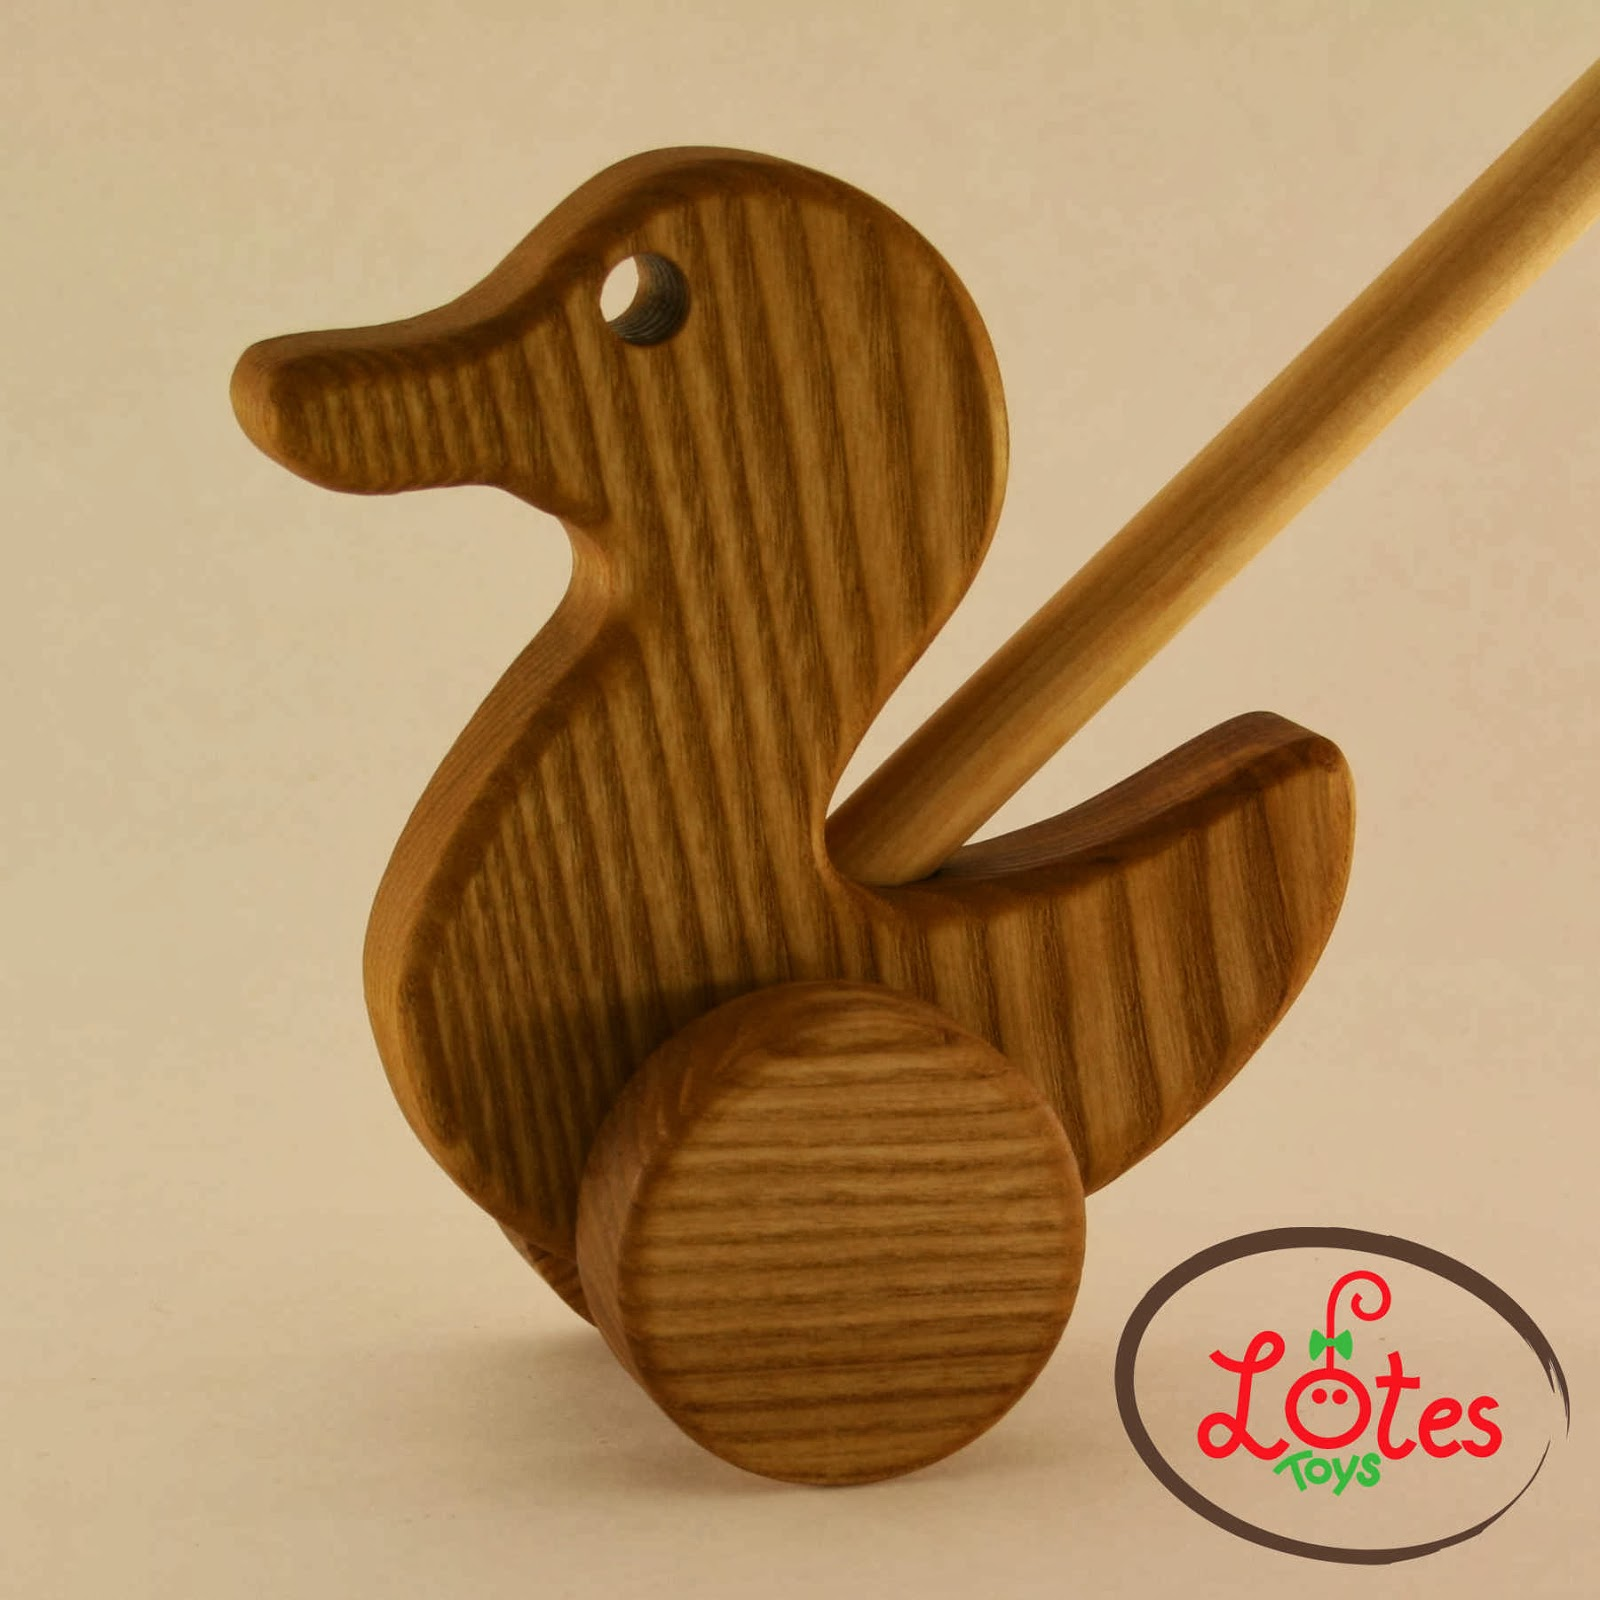 Lotes Wooden Toys Push Toys